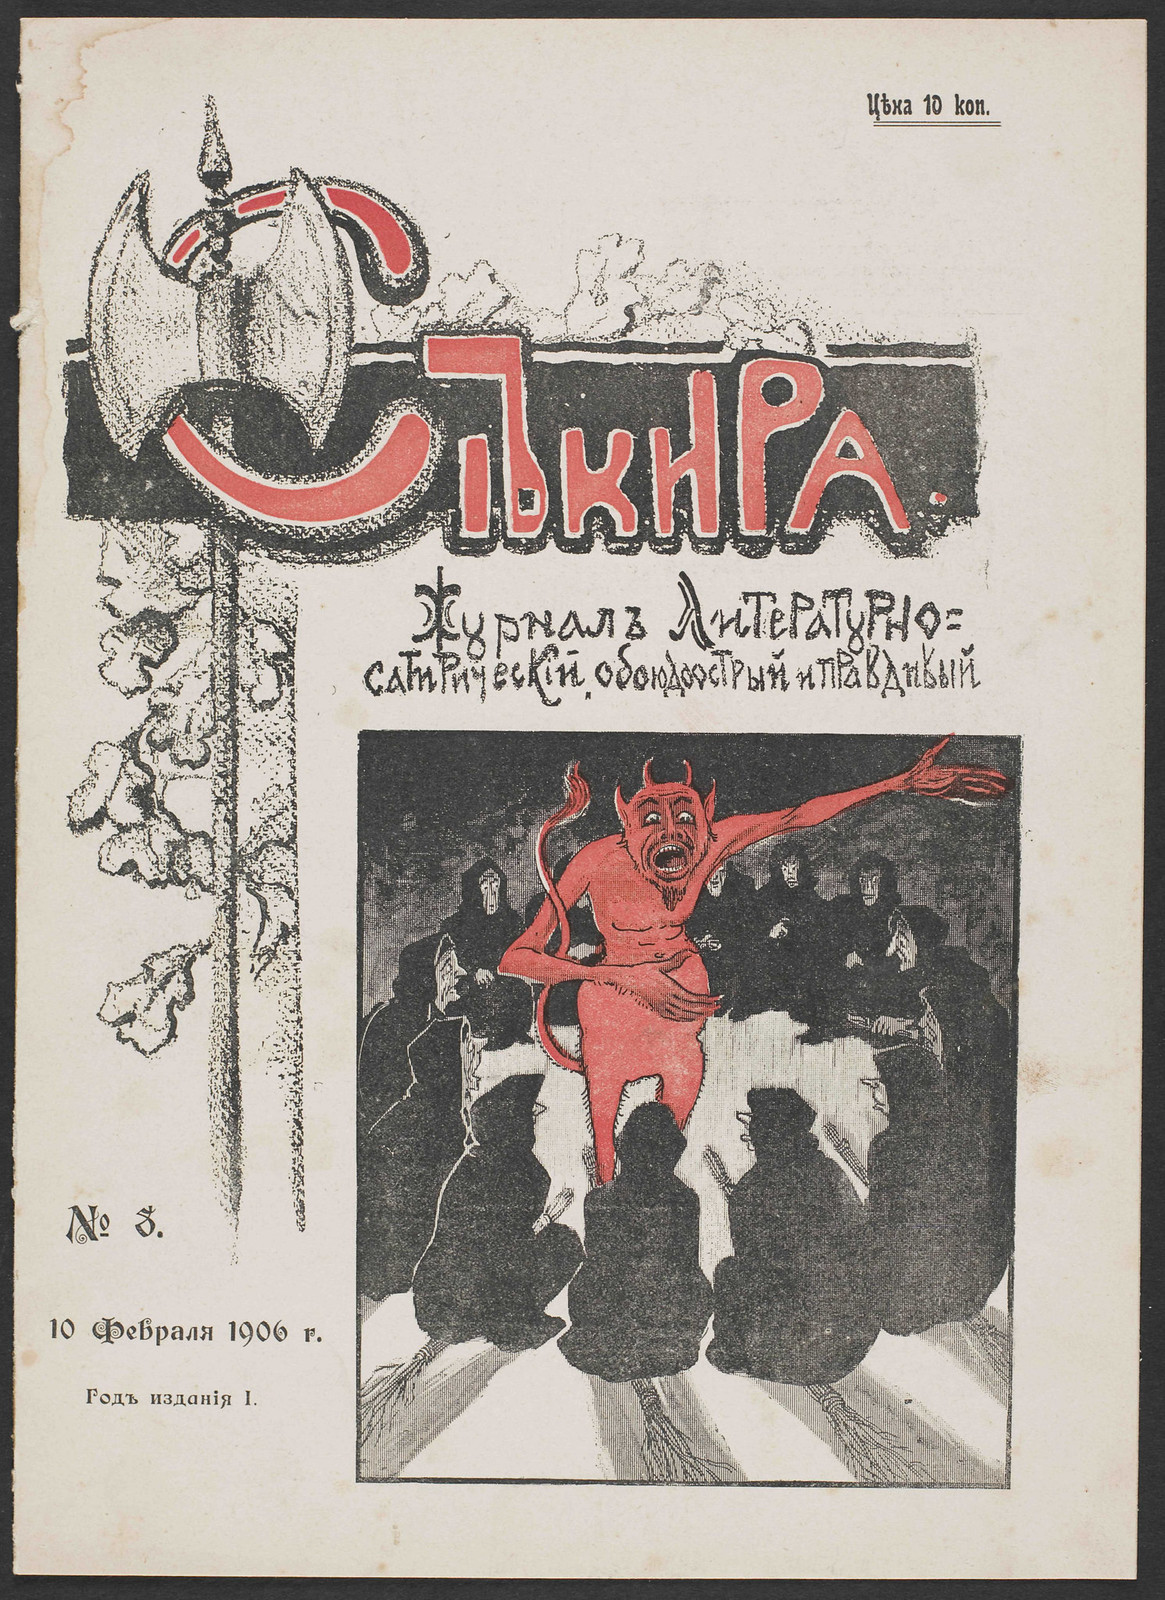 Sekira, vol. 1, no. 8, February 10, 1906-1